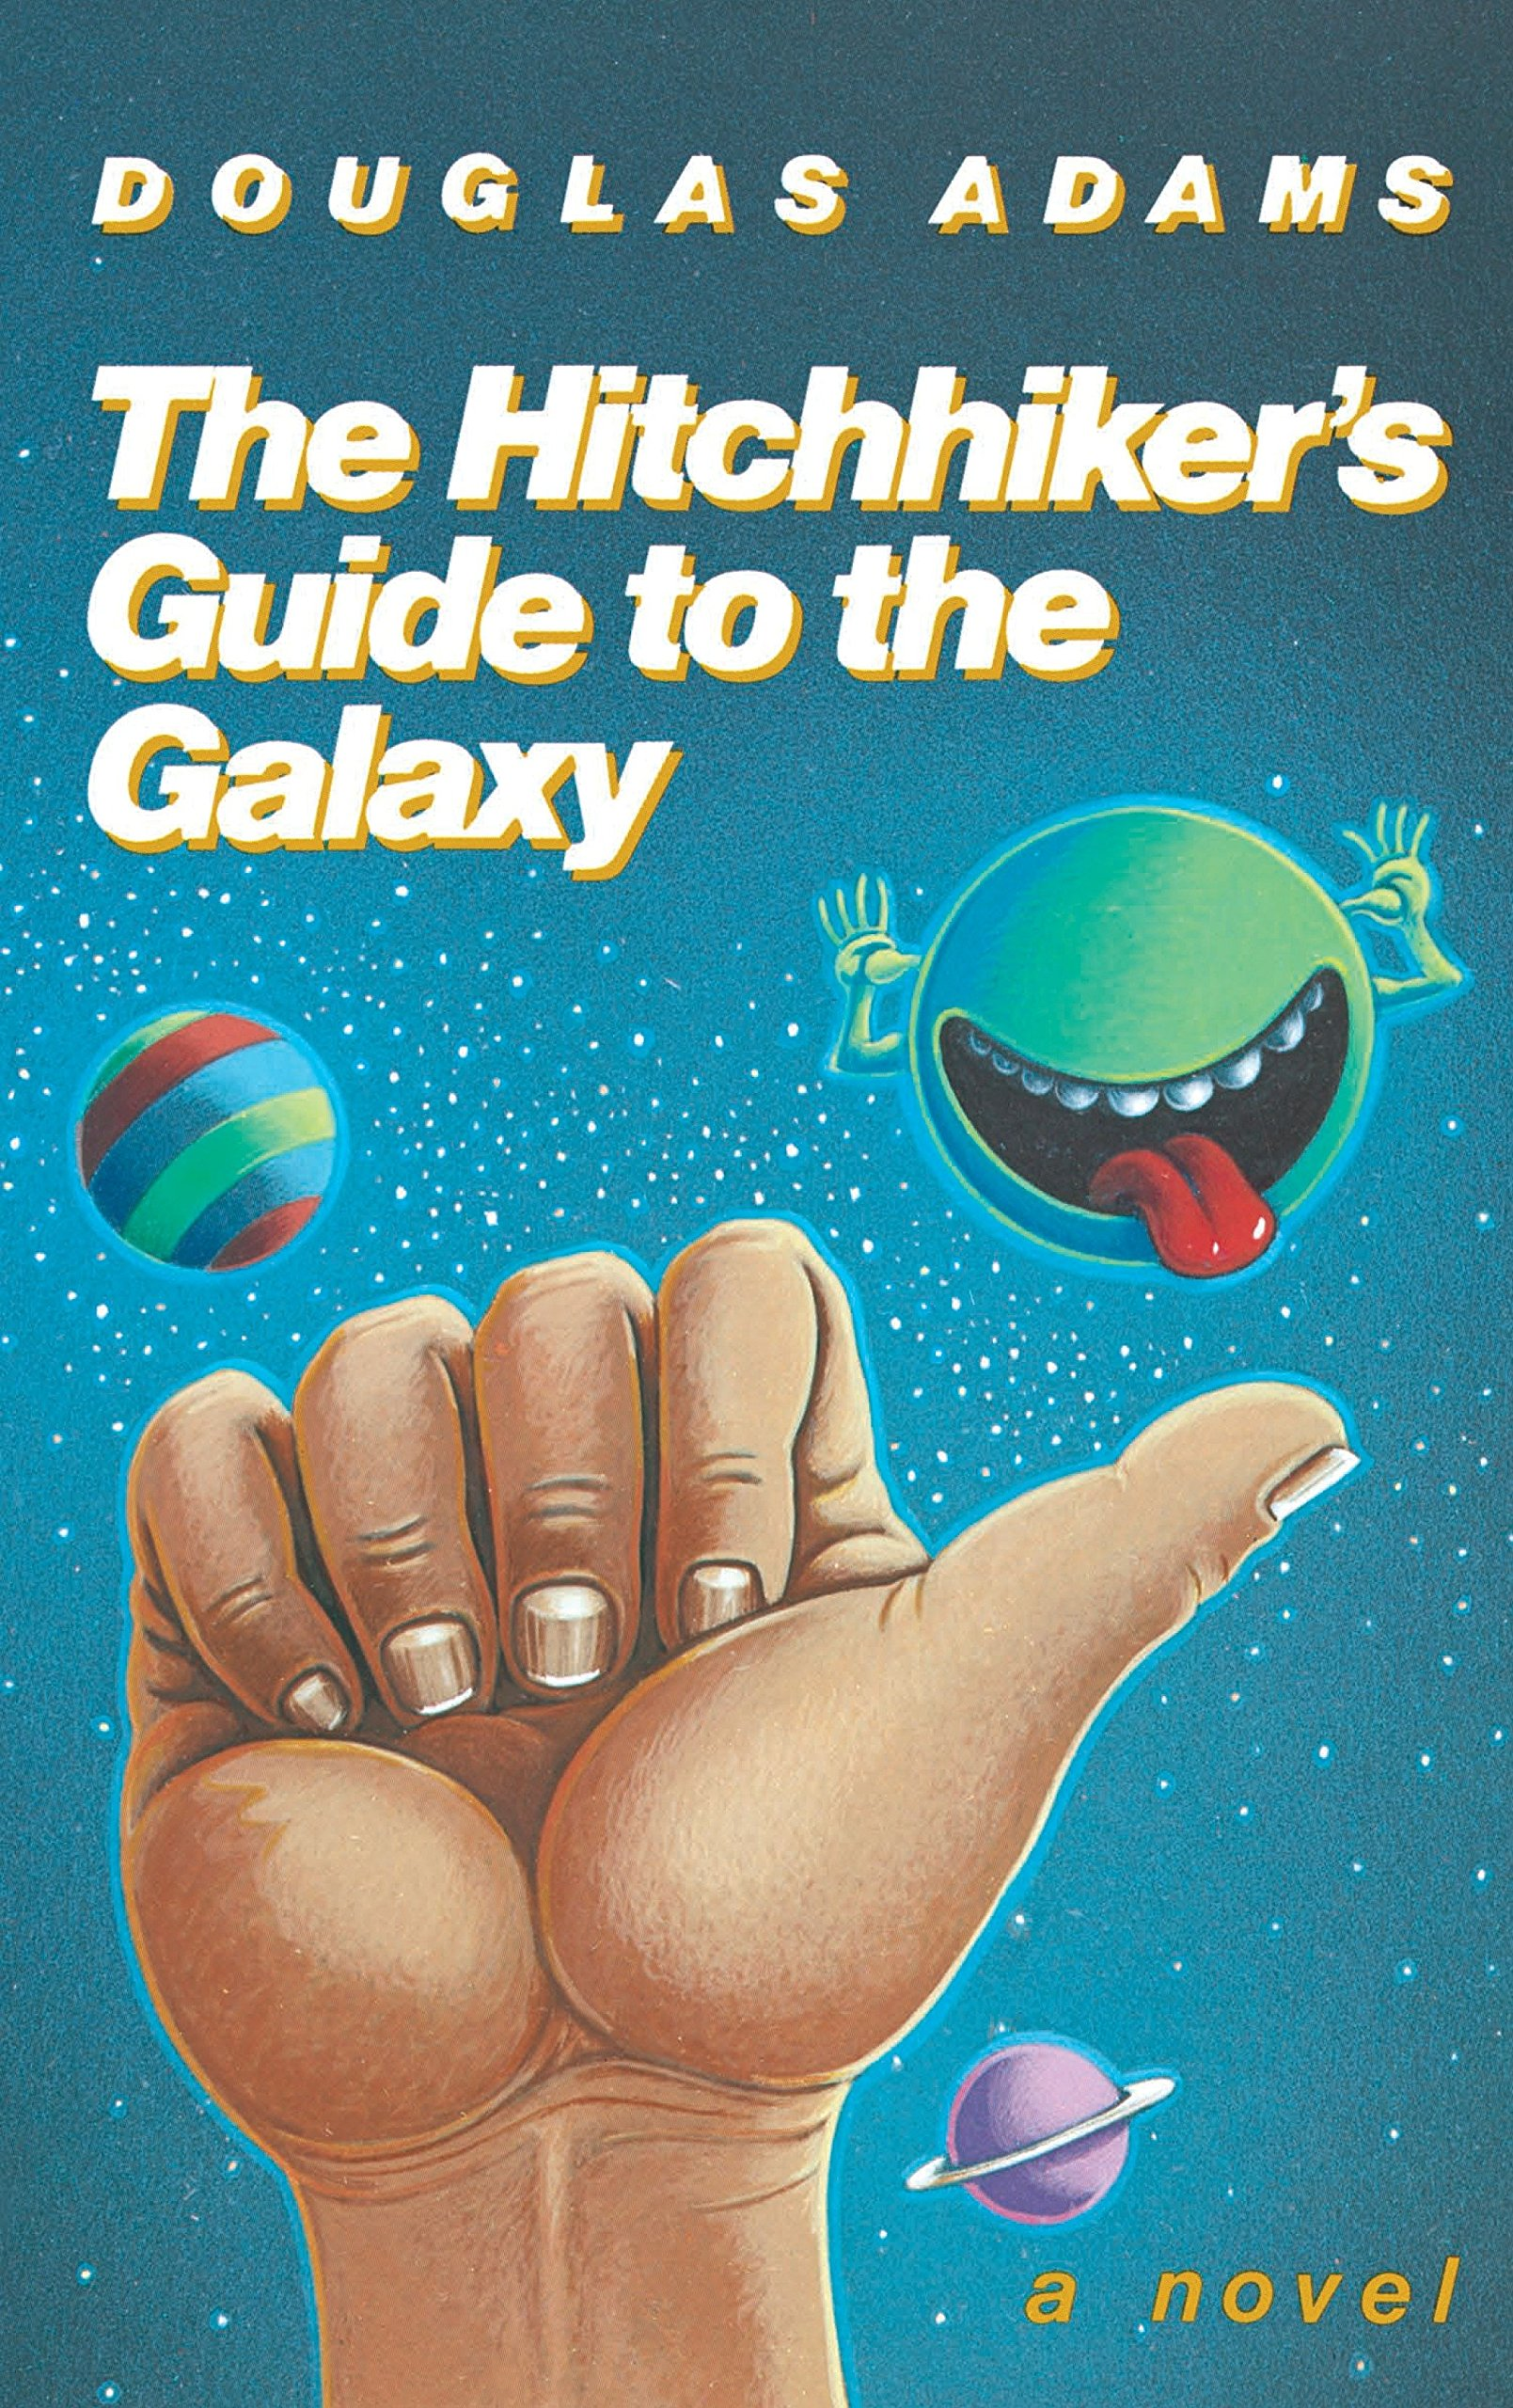 The book cover of, 'The Hitchhikers Guide to the Galaxy' by Douglas Adams